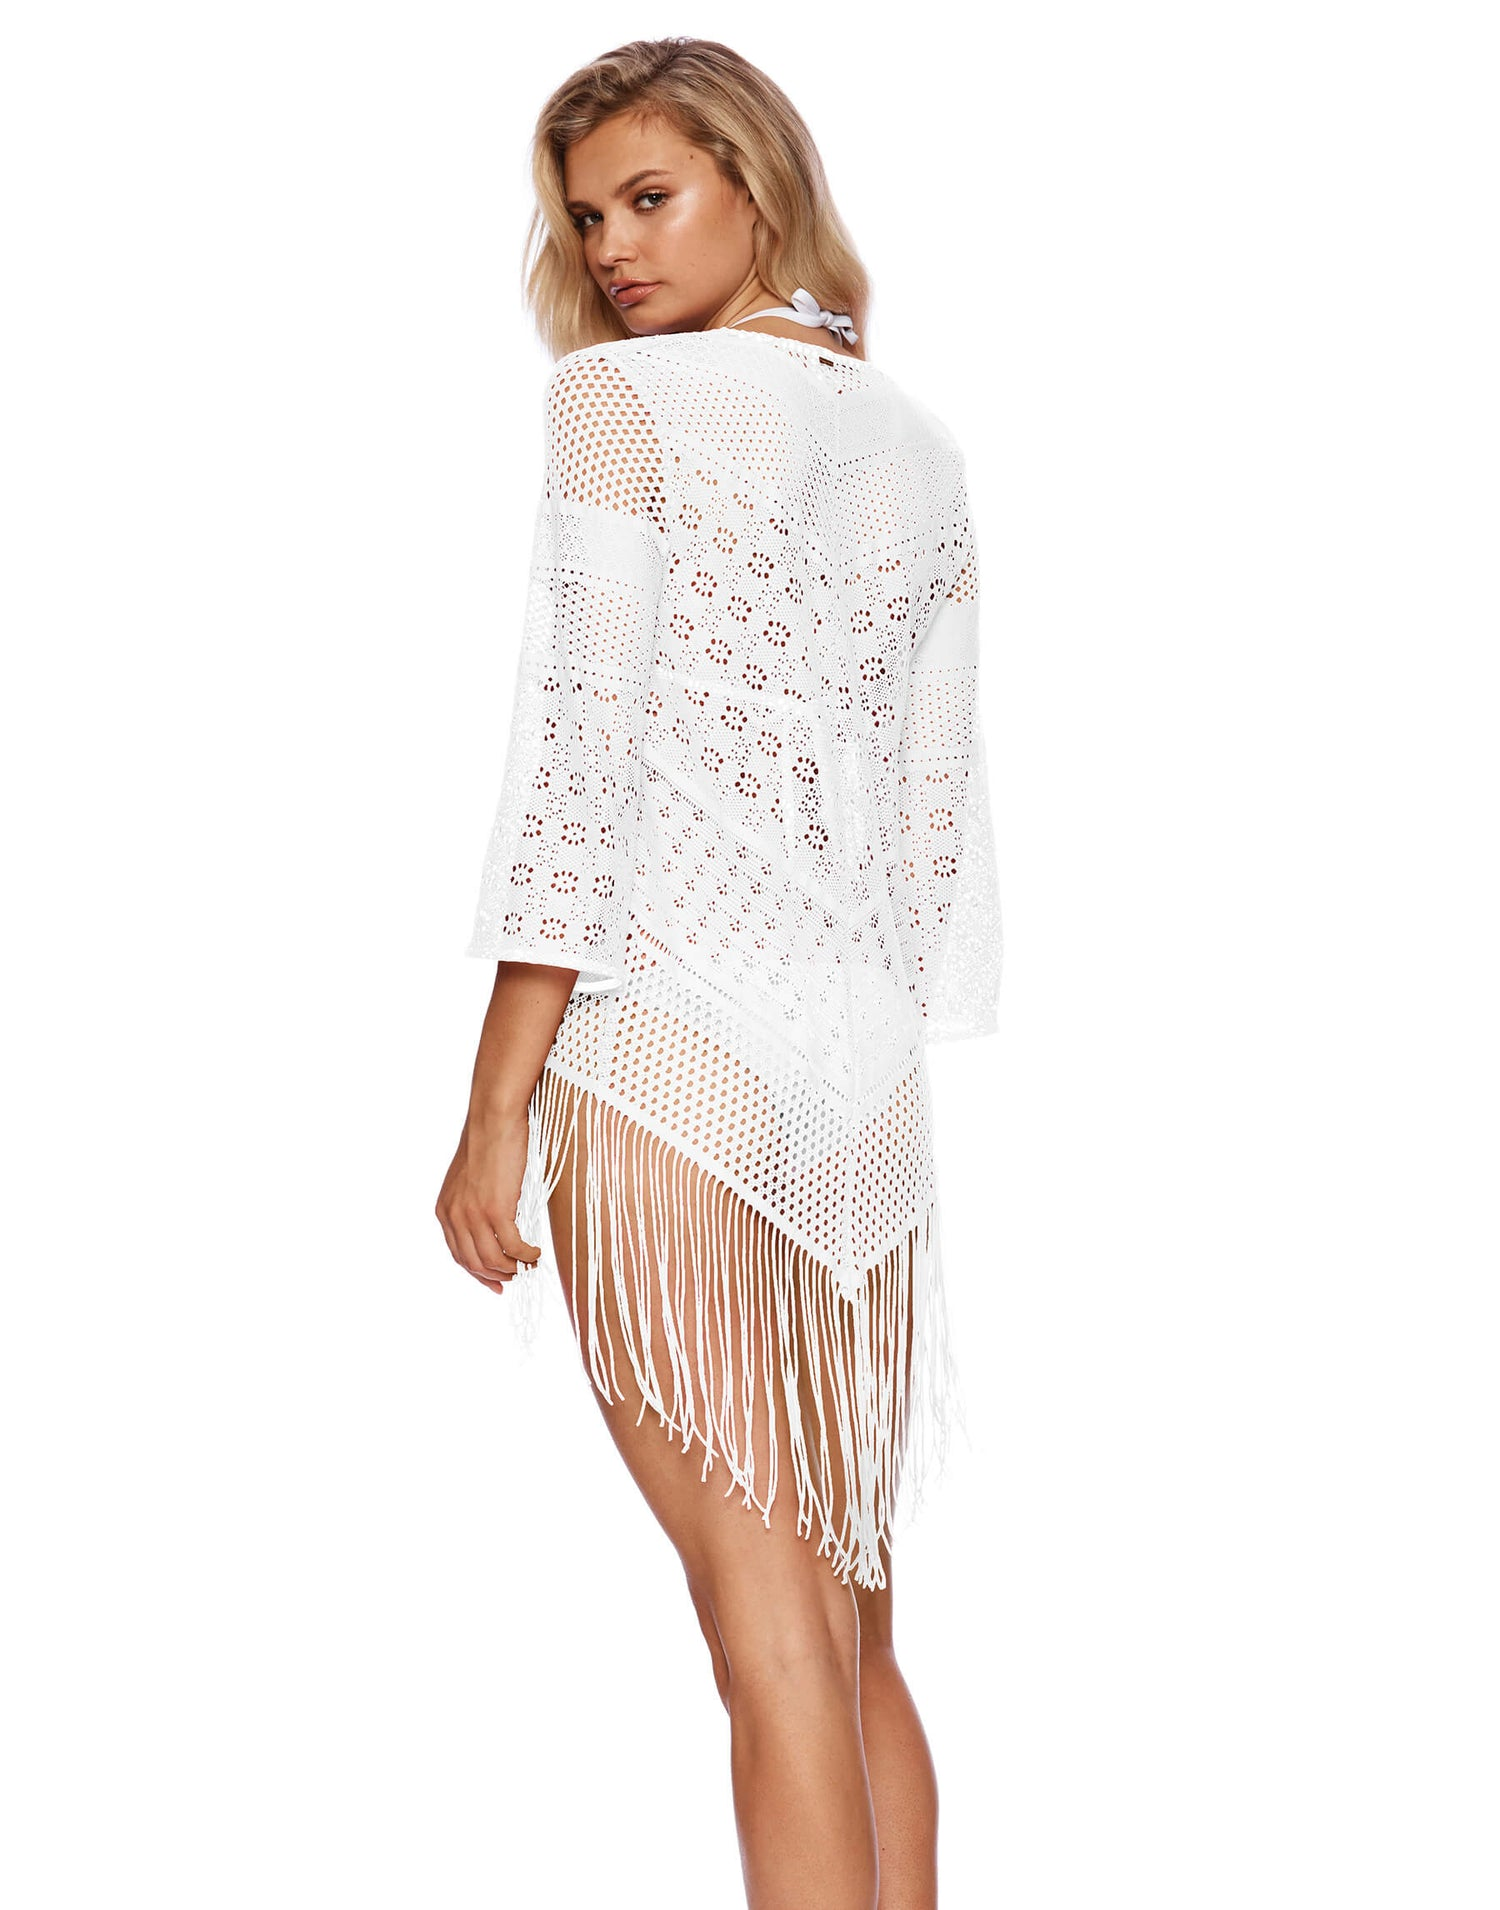 Sienna Kimono Crochet Cover Up in White - back view